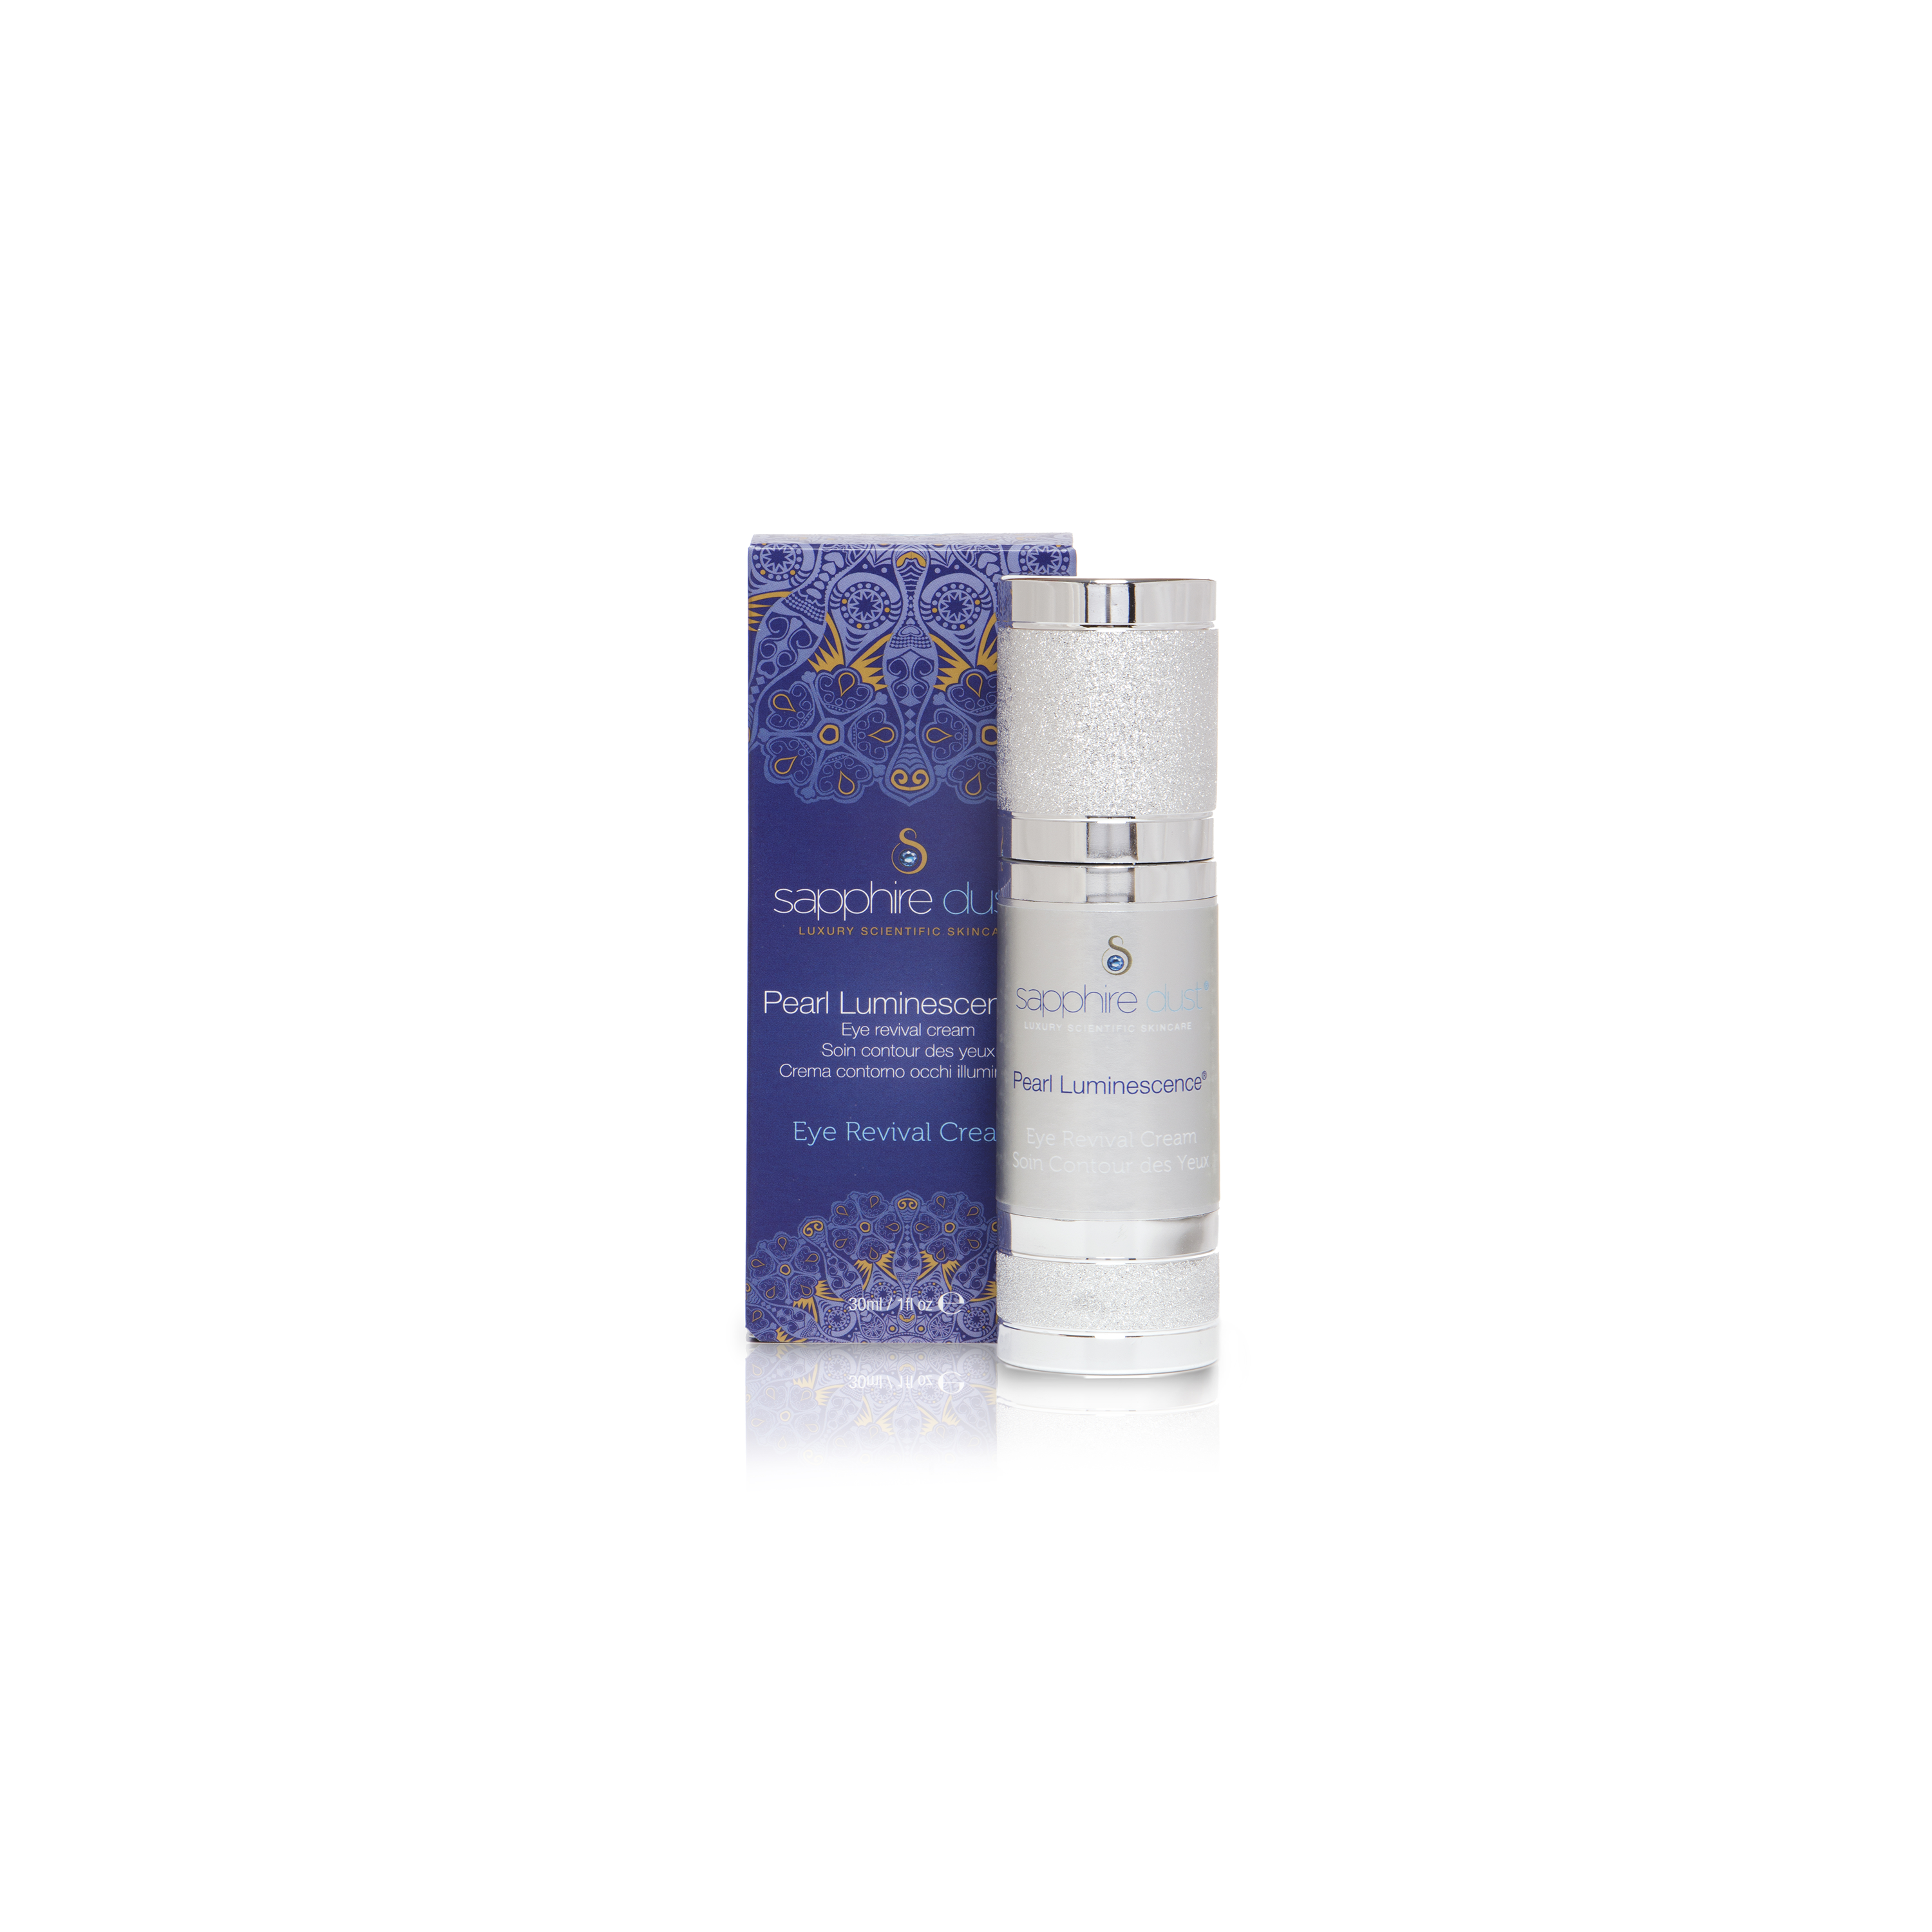 Pearl Luminescence - Eye Revival Cream